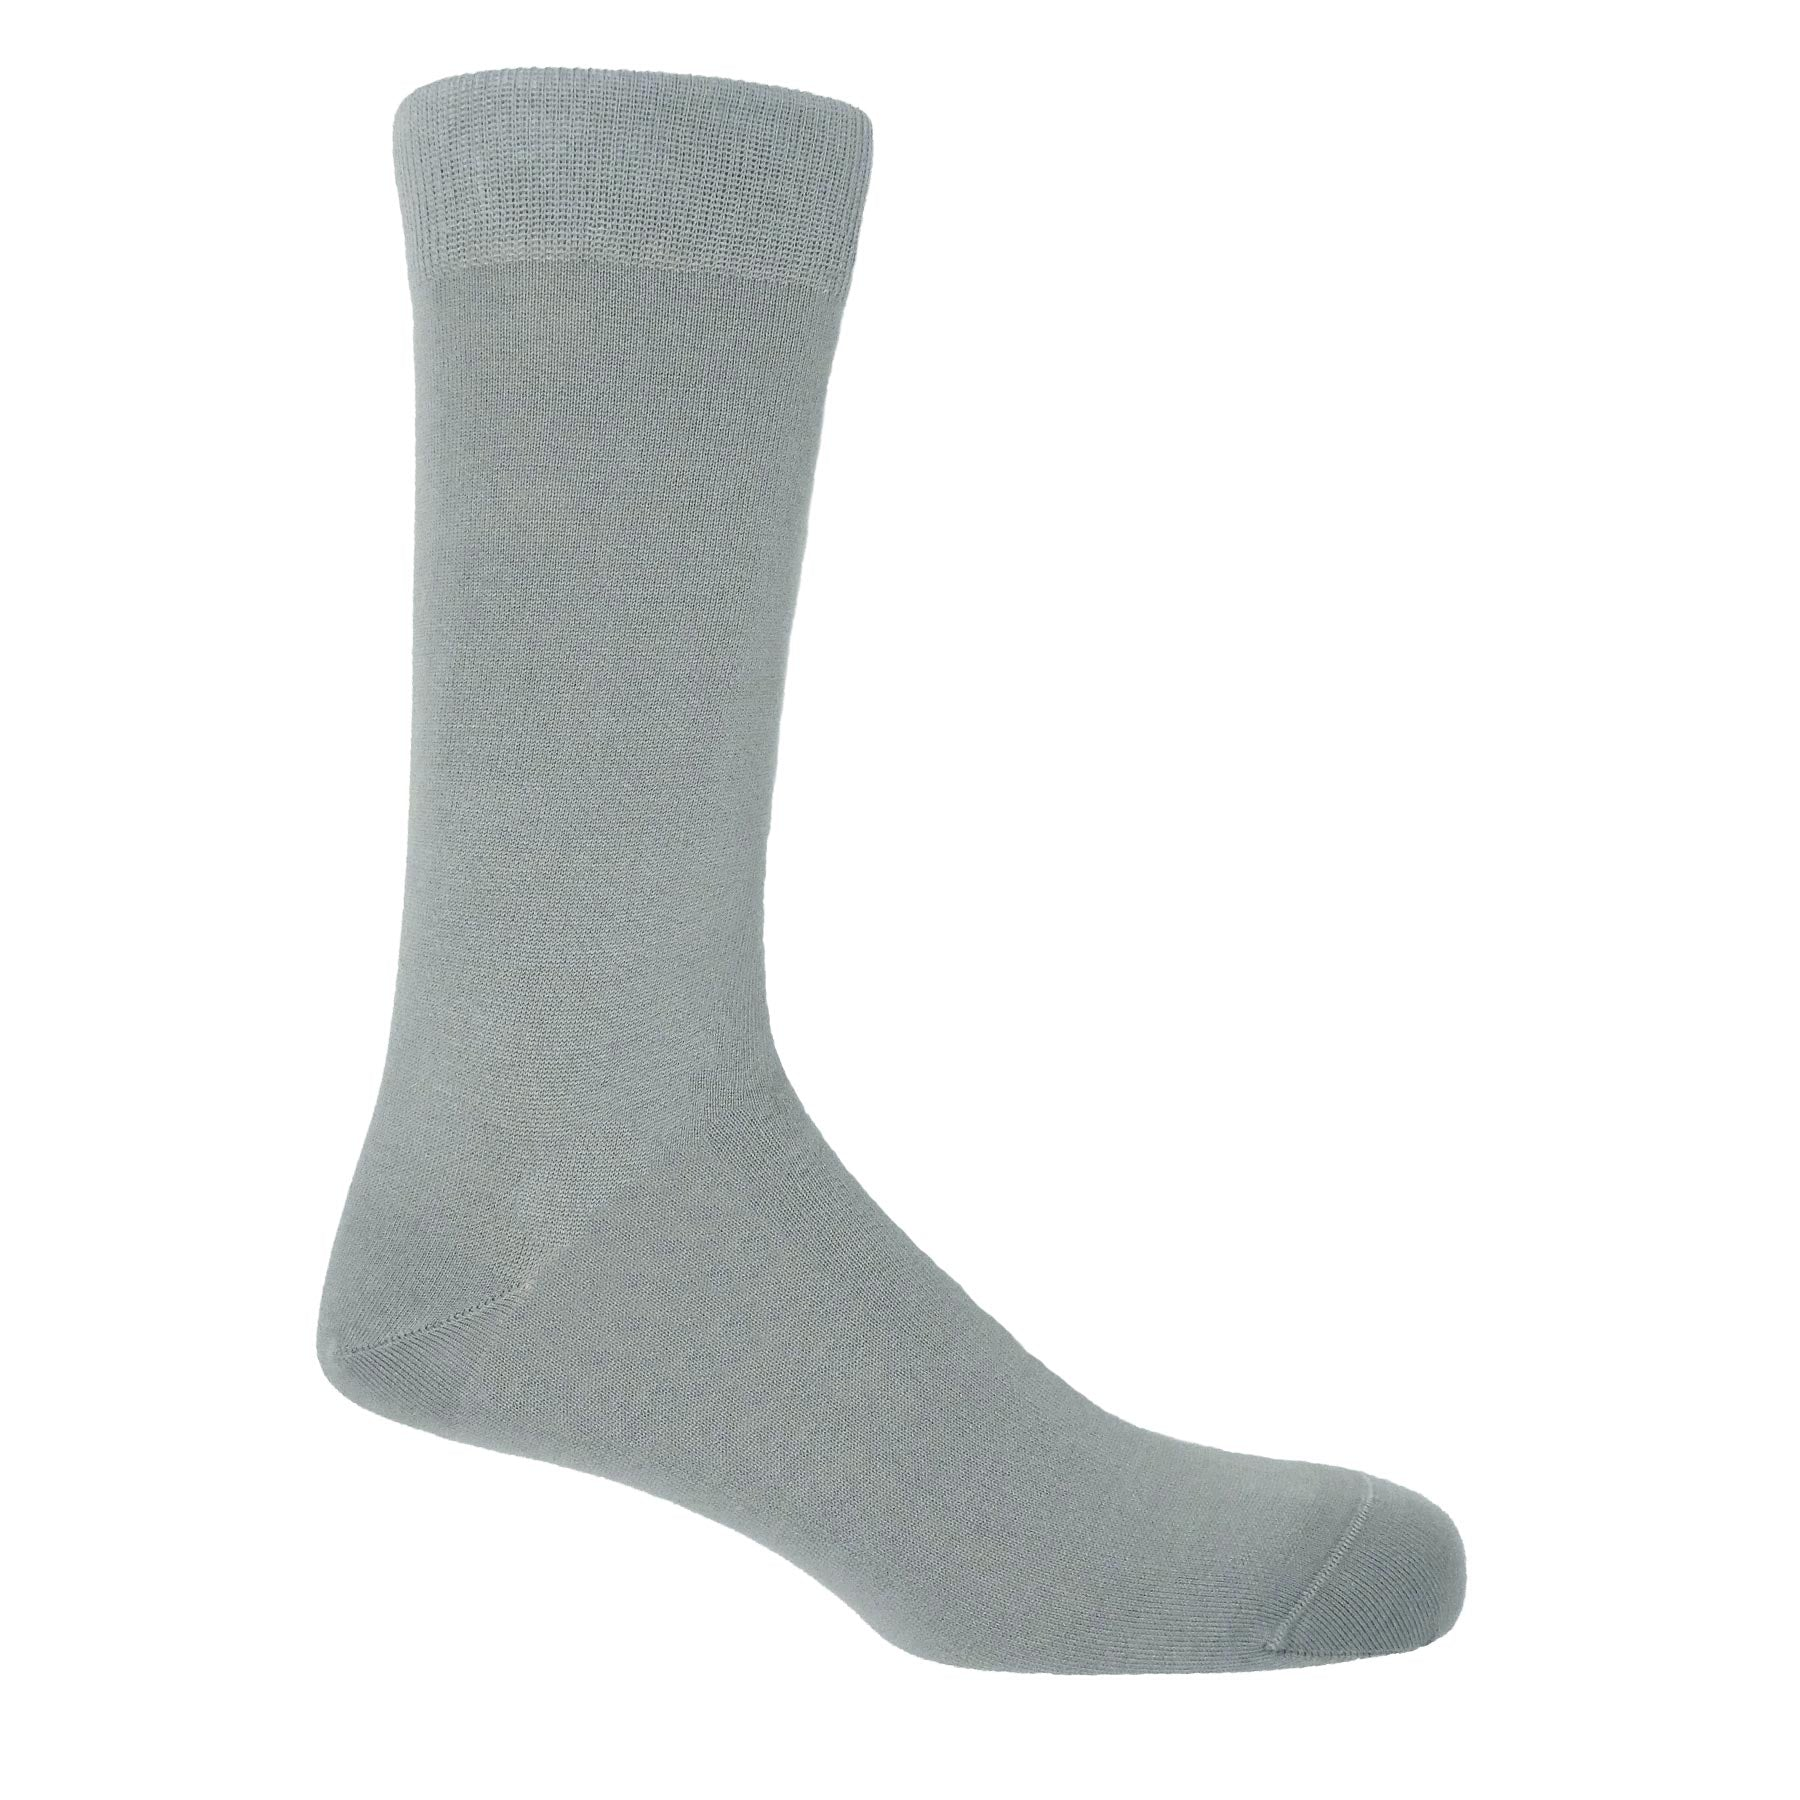 Classic Men's Socks Light Grey